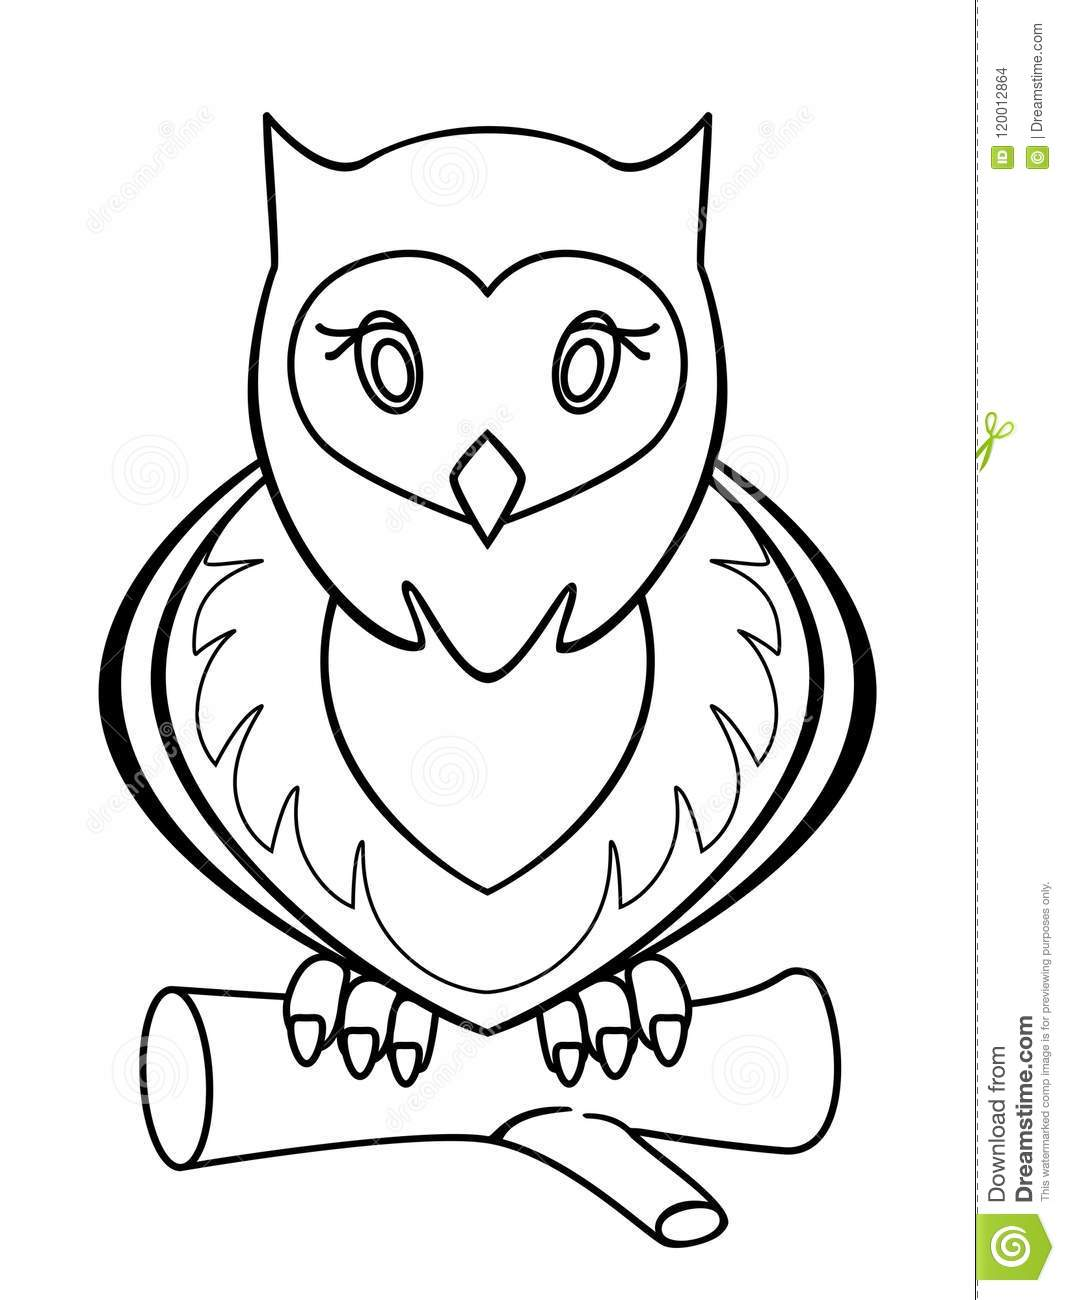 Owl. Linear Pattern For Coloring Or Children`s Book. Stock ...